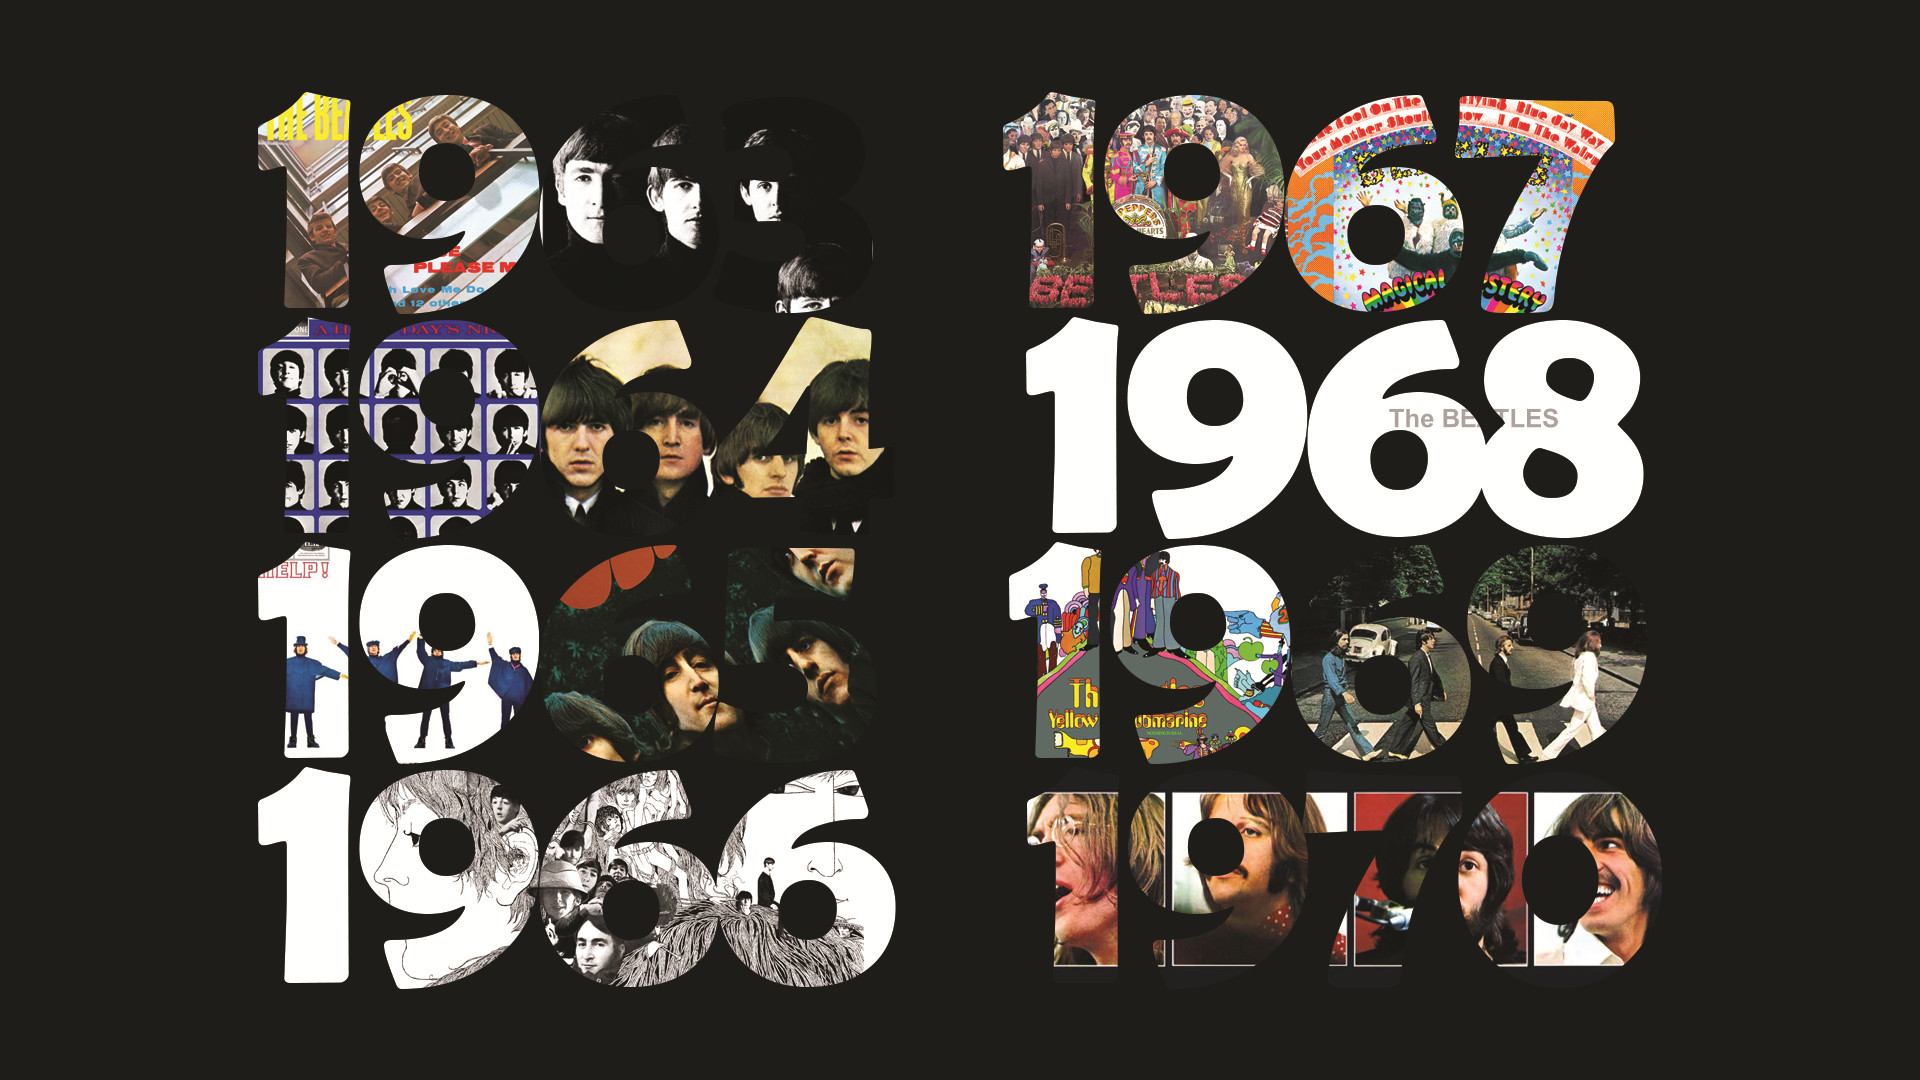 The Beatles Wallpaper Iphone 62 Images